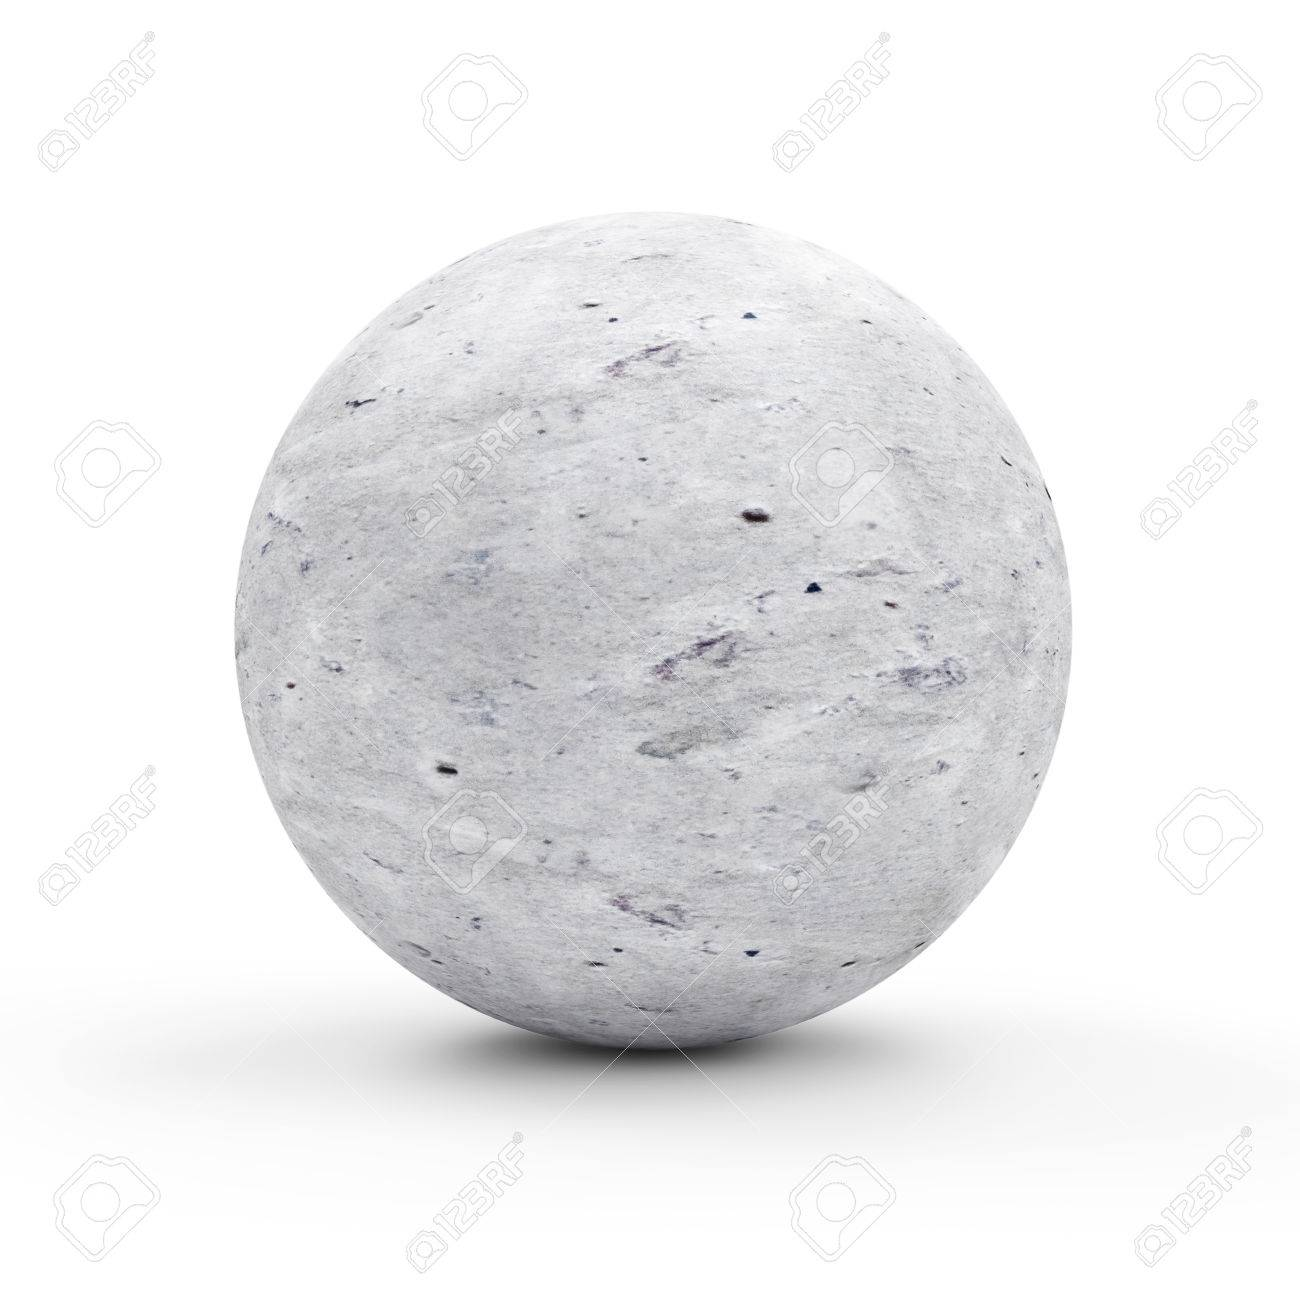 concrete sphere isolated on